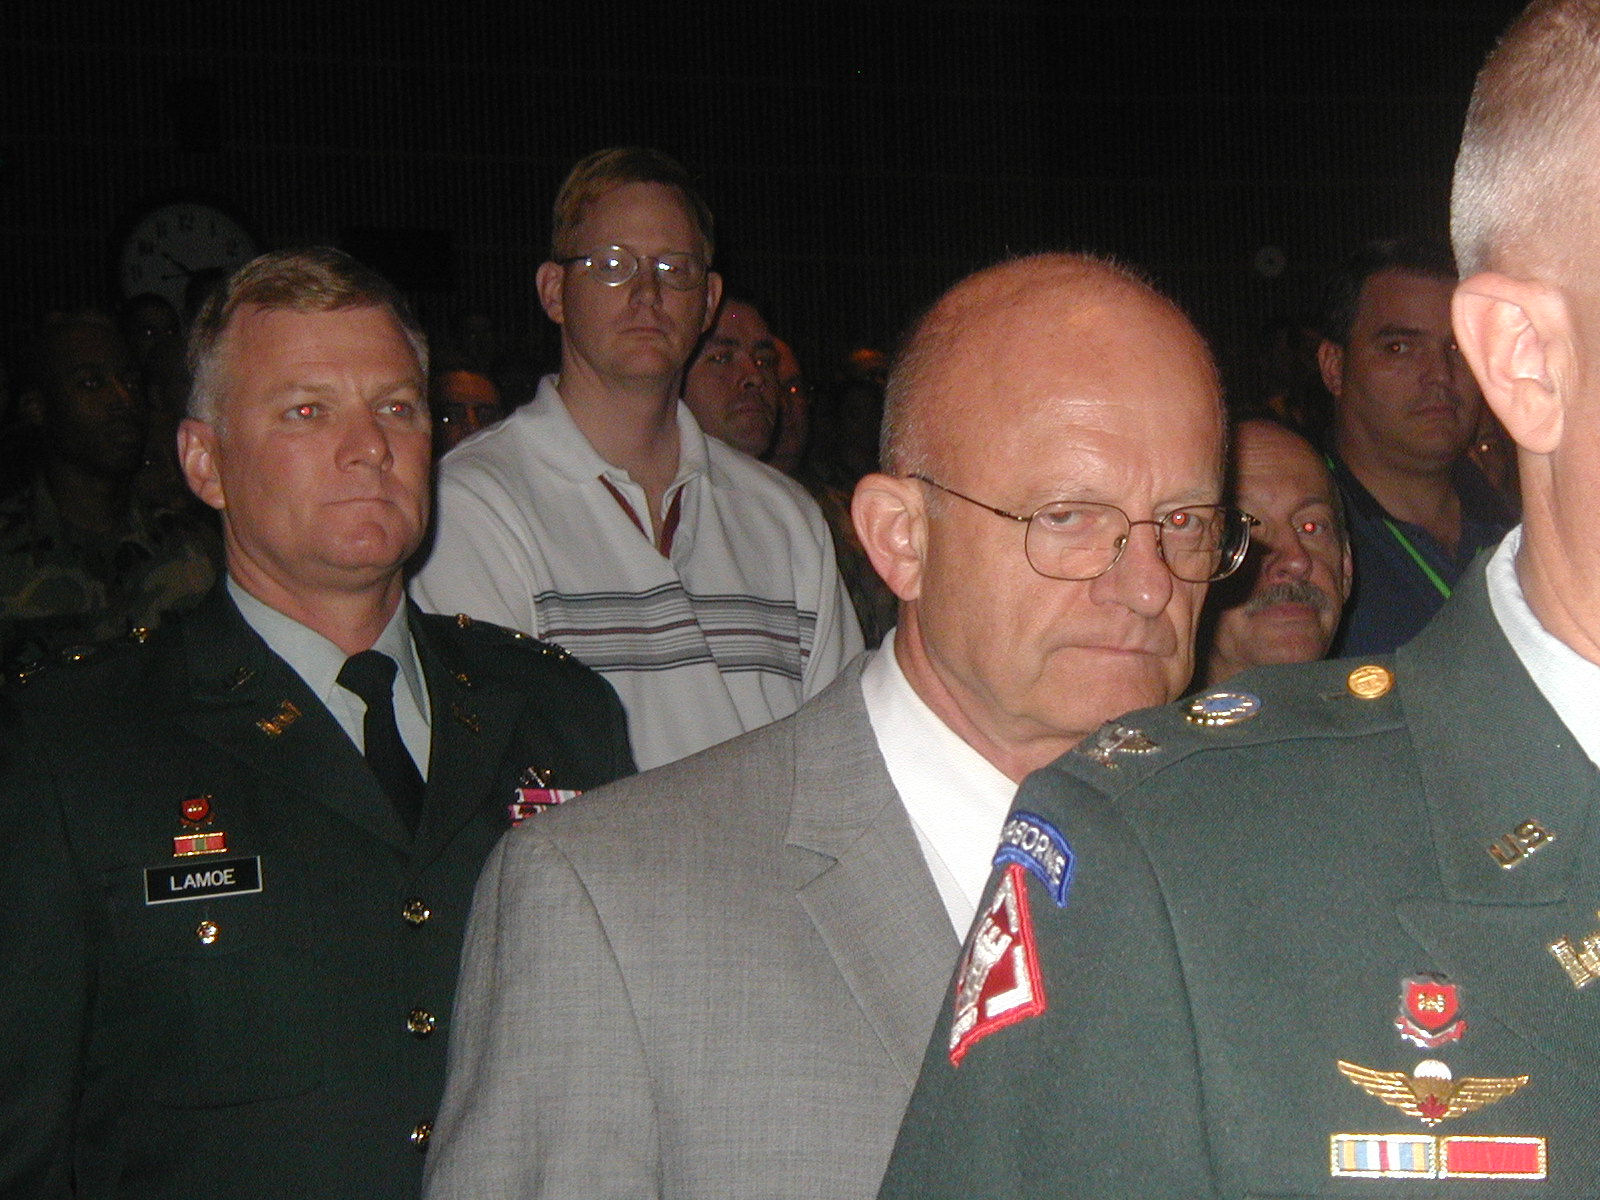 Air Force Lt Gen James R. Clapper (ret) the current Director of National Intelligence after serving circa. 2006 as the Director of the National Geospatial Intelligent Agency